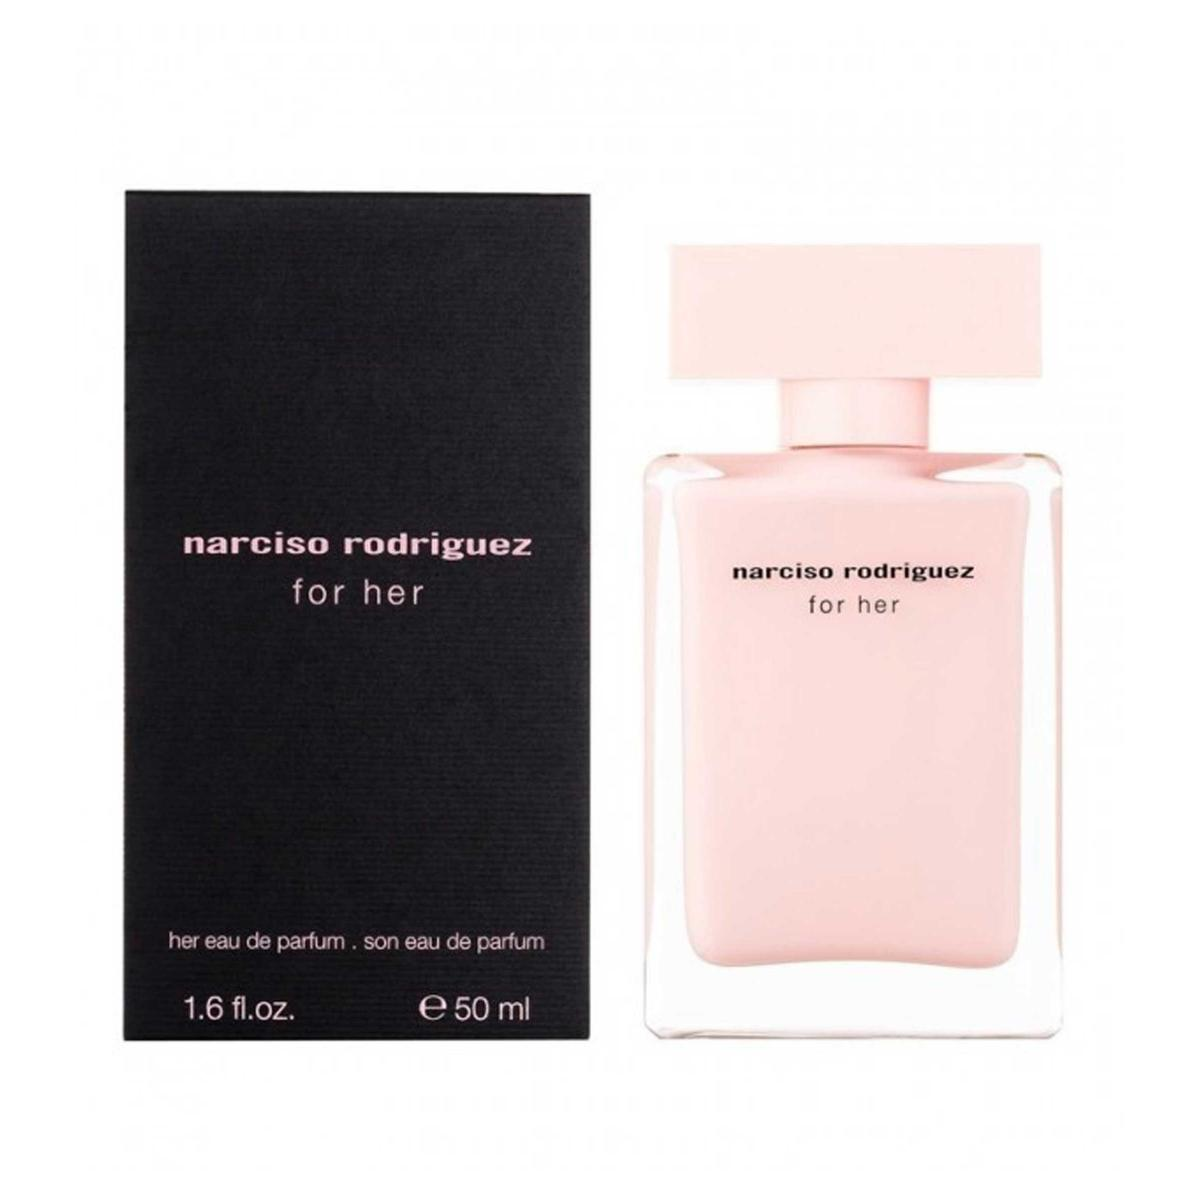 Profumo Narciso Rodriguez For Her Eau de Parfum 50 ml da donna